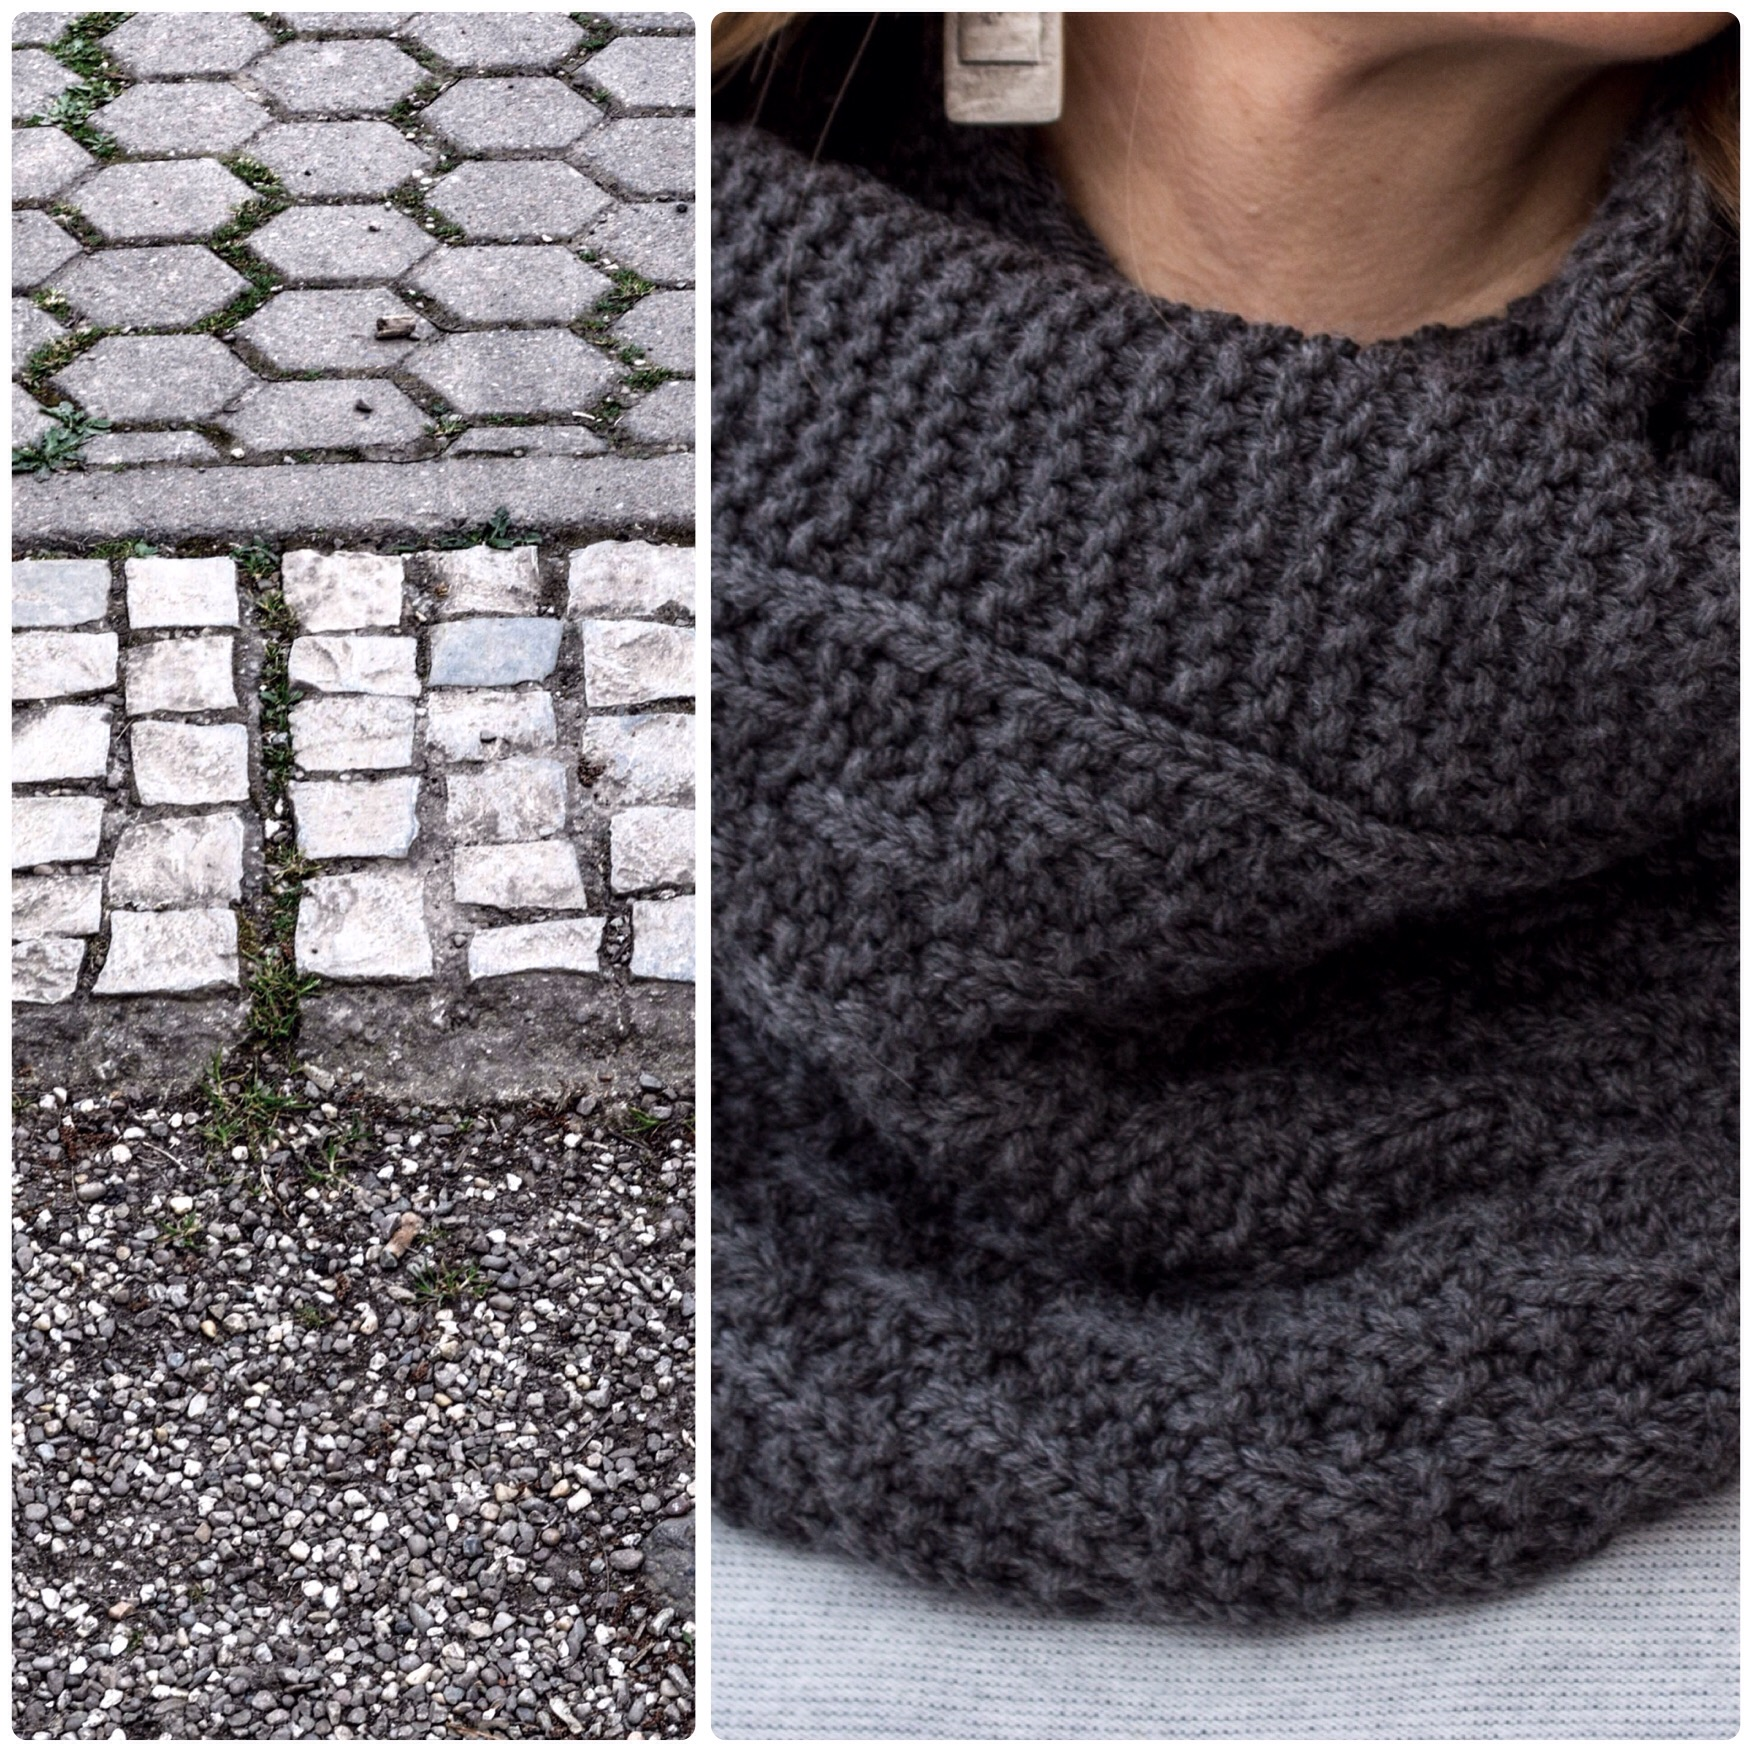 cobblestone cowl knitting pattern texture detail